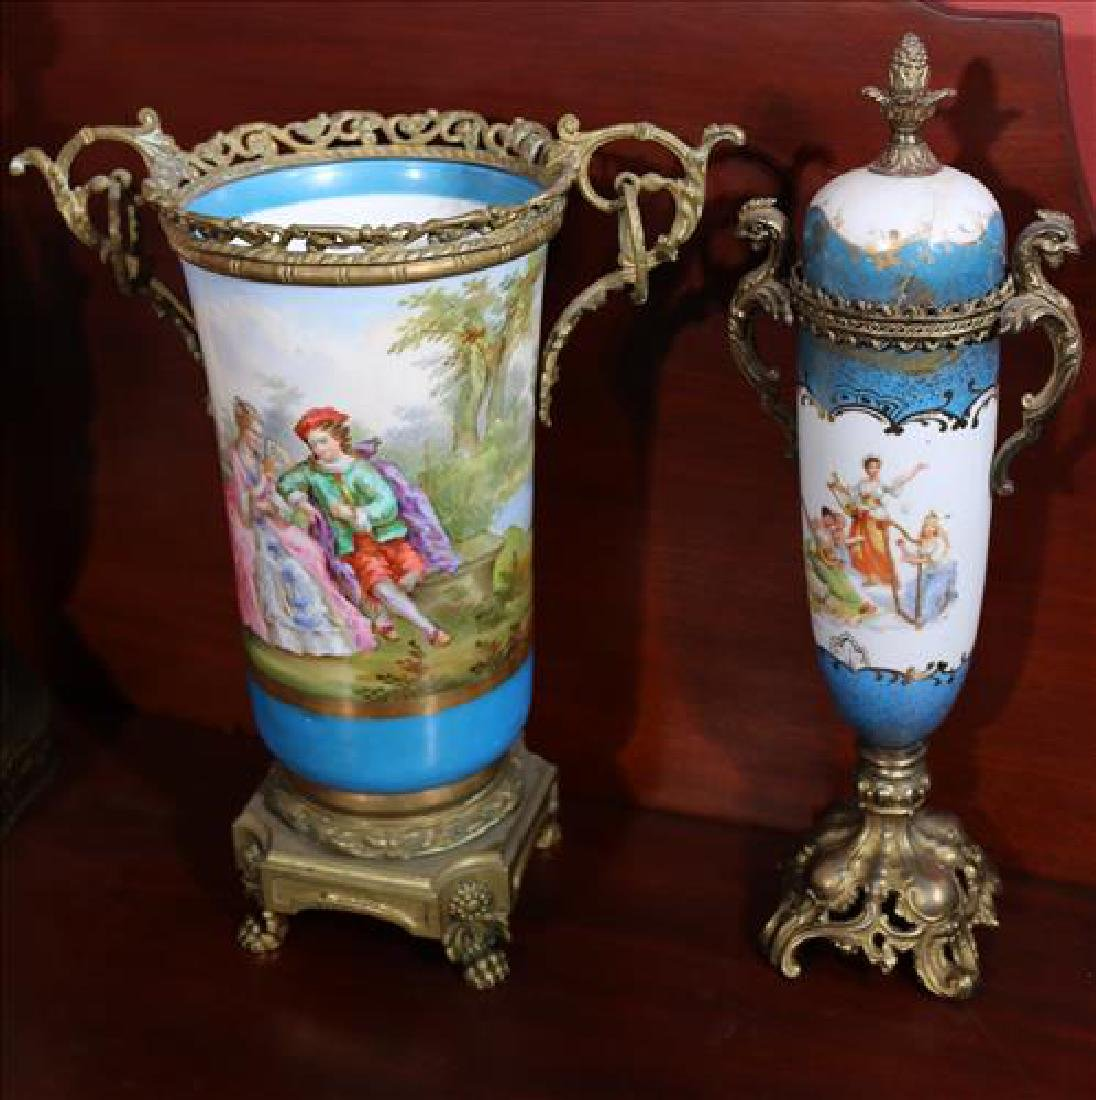 2 pieces, Sevres blue vase and capped urn with lid